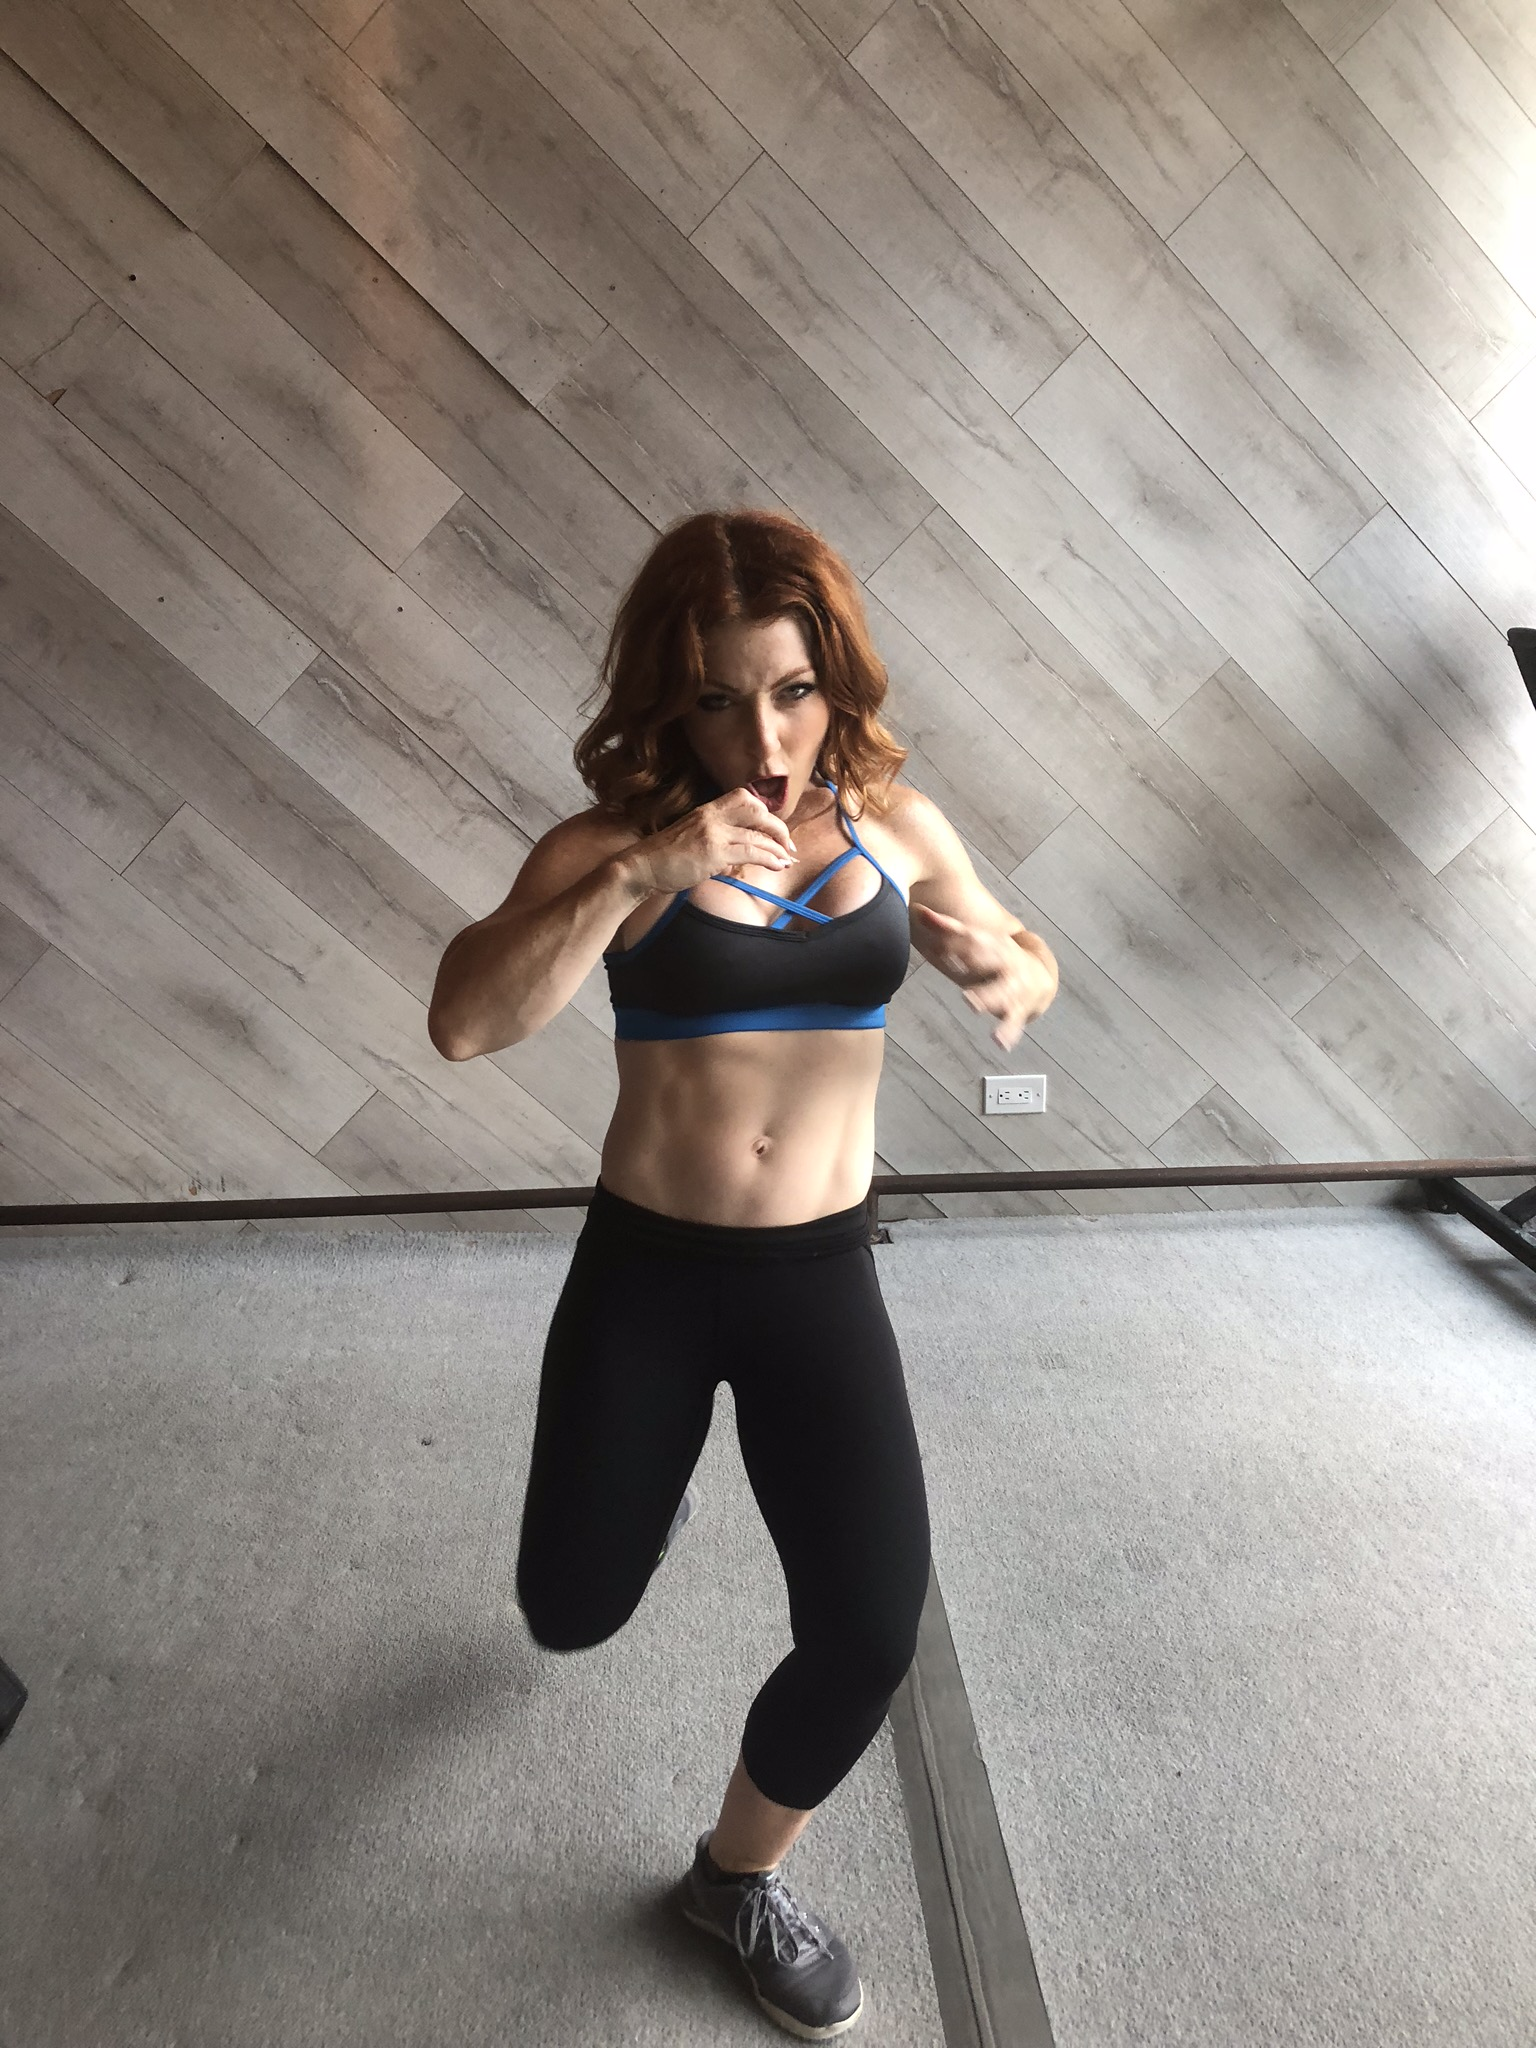 Aside from Group Training you can also book a Personal Training Session with Jenna -